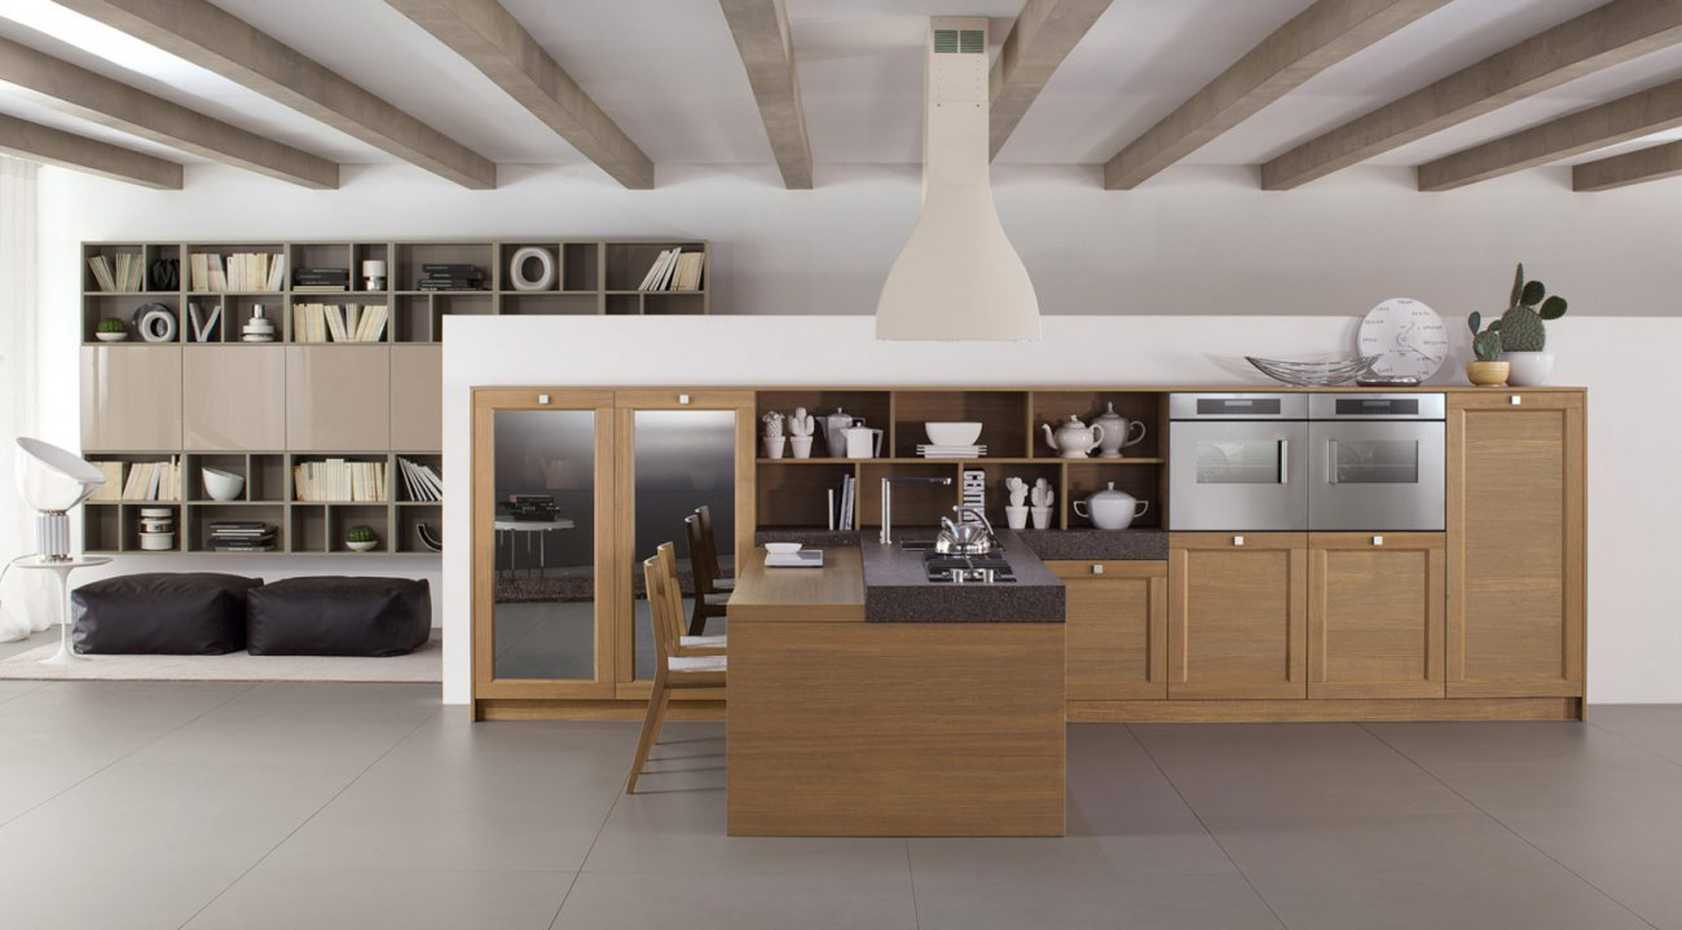 Glamour by Doimo Cucine product image 7